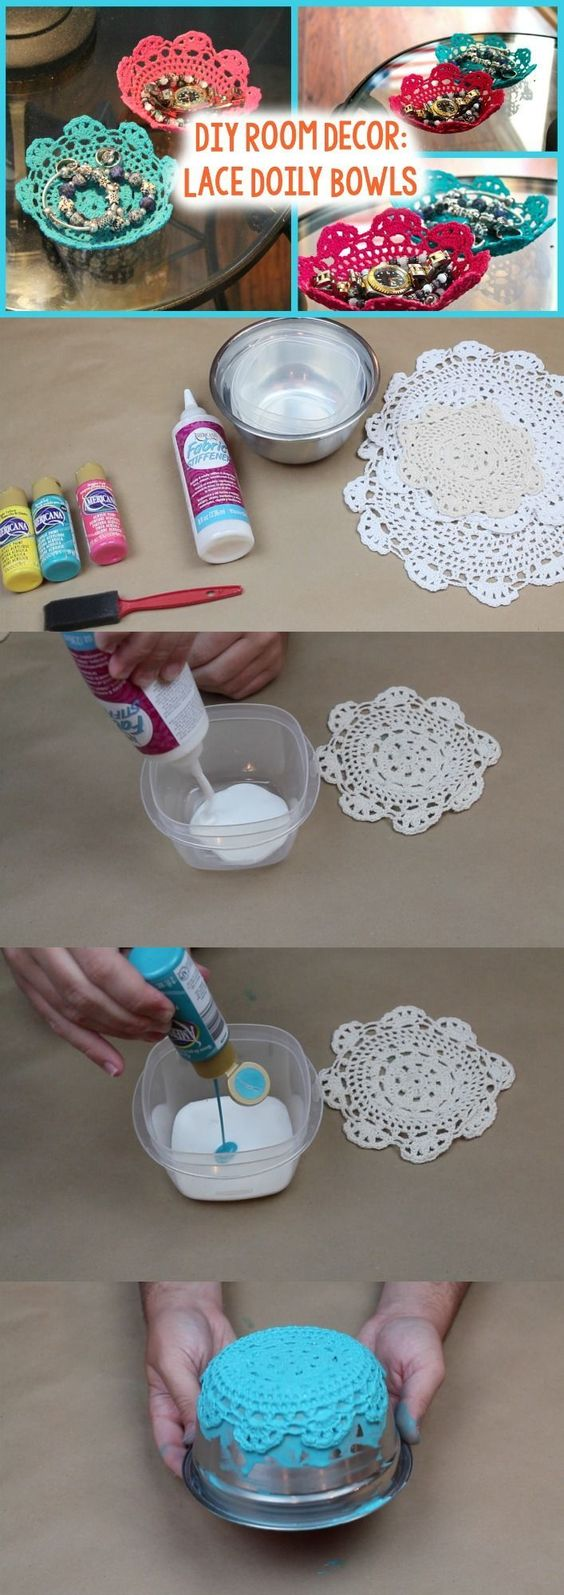 20 easy diy bowl ideas and tutorials 2017 diy lace doily bowl solutioingenieria Image collections